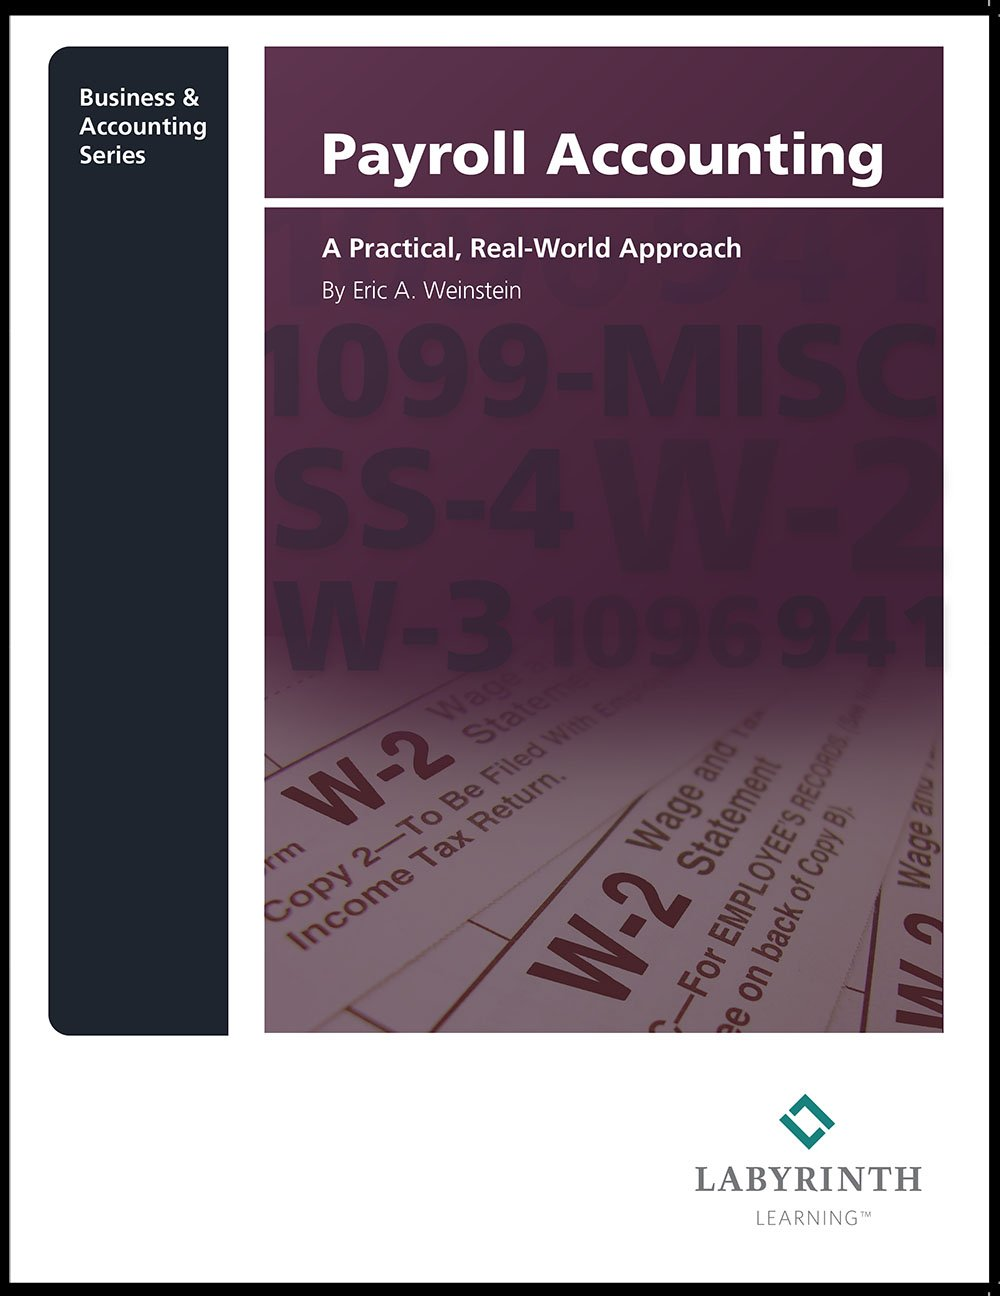 Amazon payroll accounting a practical real world approach amazon payroll accounting a practical real world approach eric a weinstein 2014 in stock july 15 health personal care fandeluxe Gallery